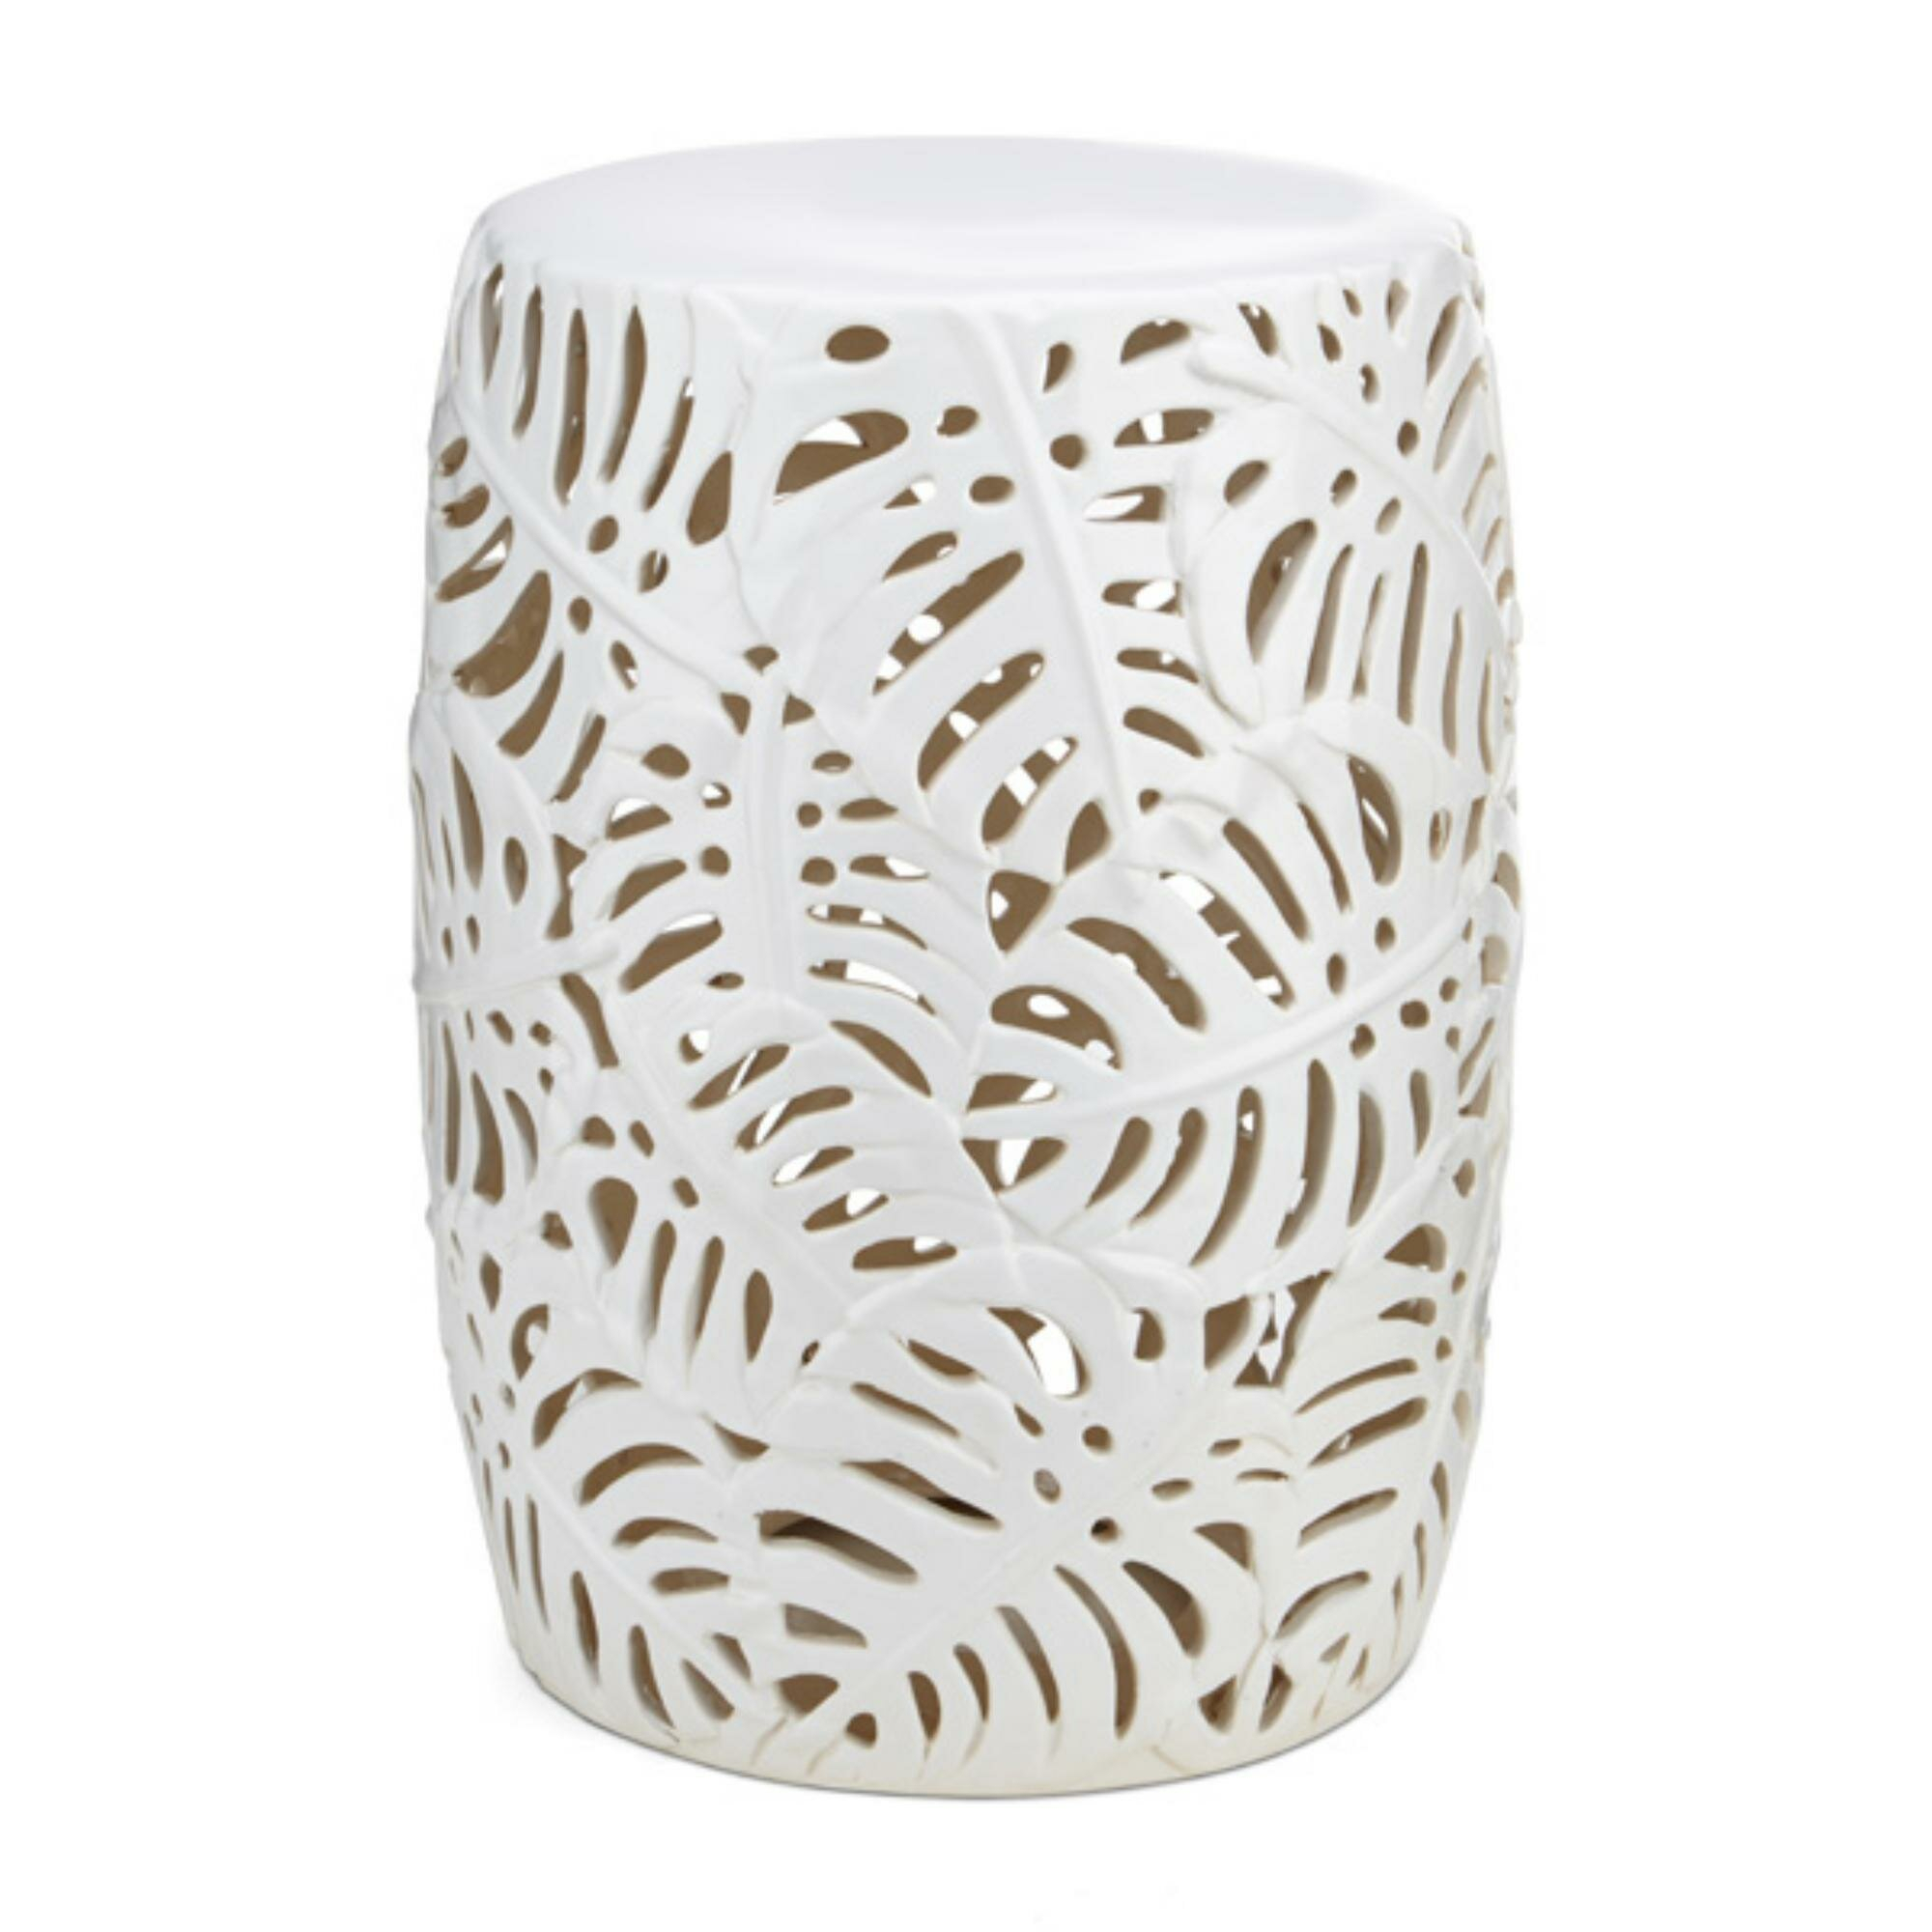 Lachlan Palm Leaf Cutwork Pattern Ceramic Garden Stool Within Svendsen Ceramic Garden Stools (View 7 of 25)